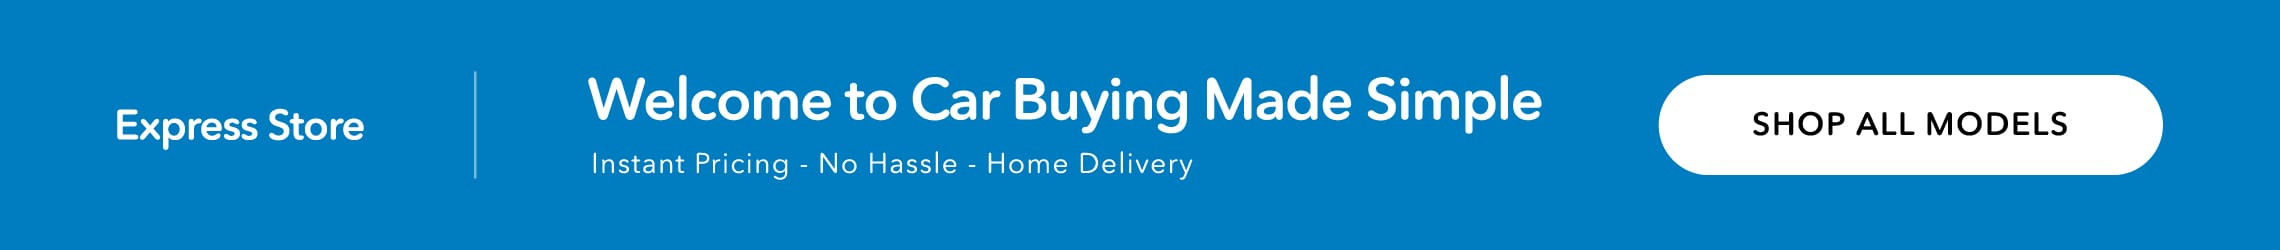 Link to Express Store. Welcome to Car Buying Made Simple: Instant Pricing, No Hassle, Home Delivery.